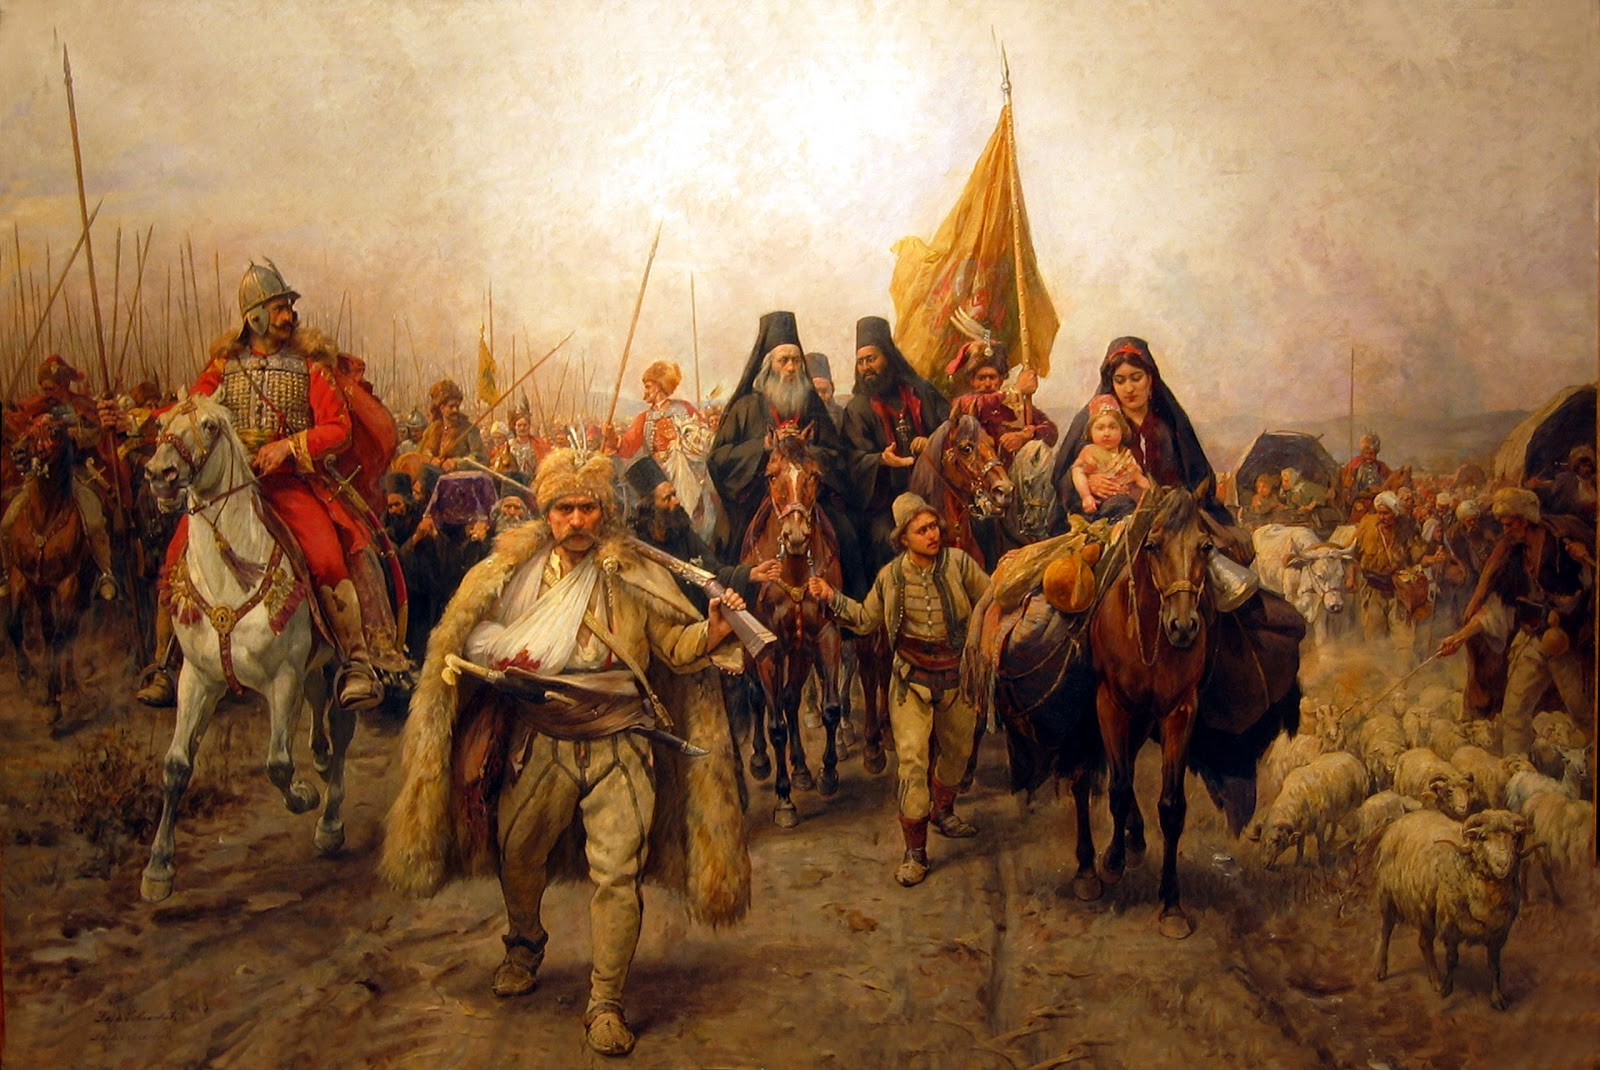 Migration of the serbs the first serbian migration occurred during